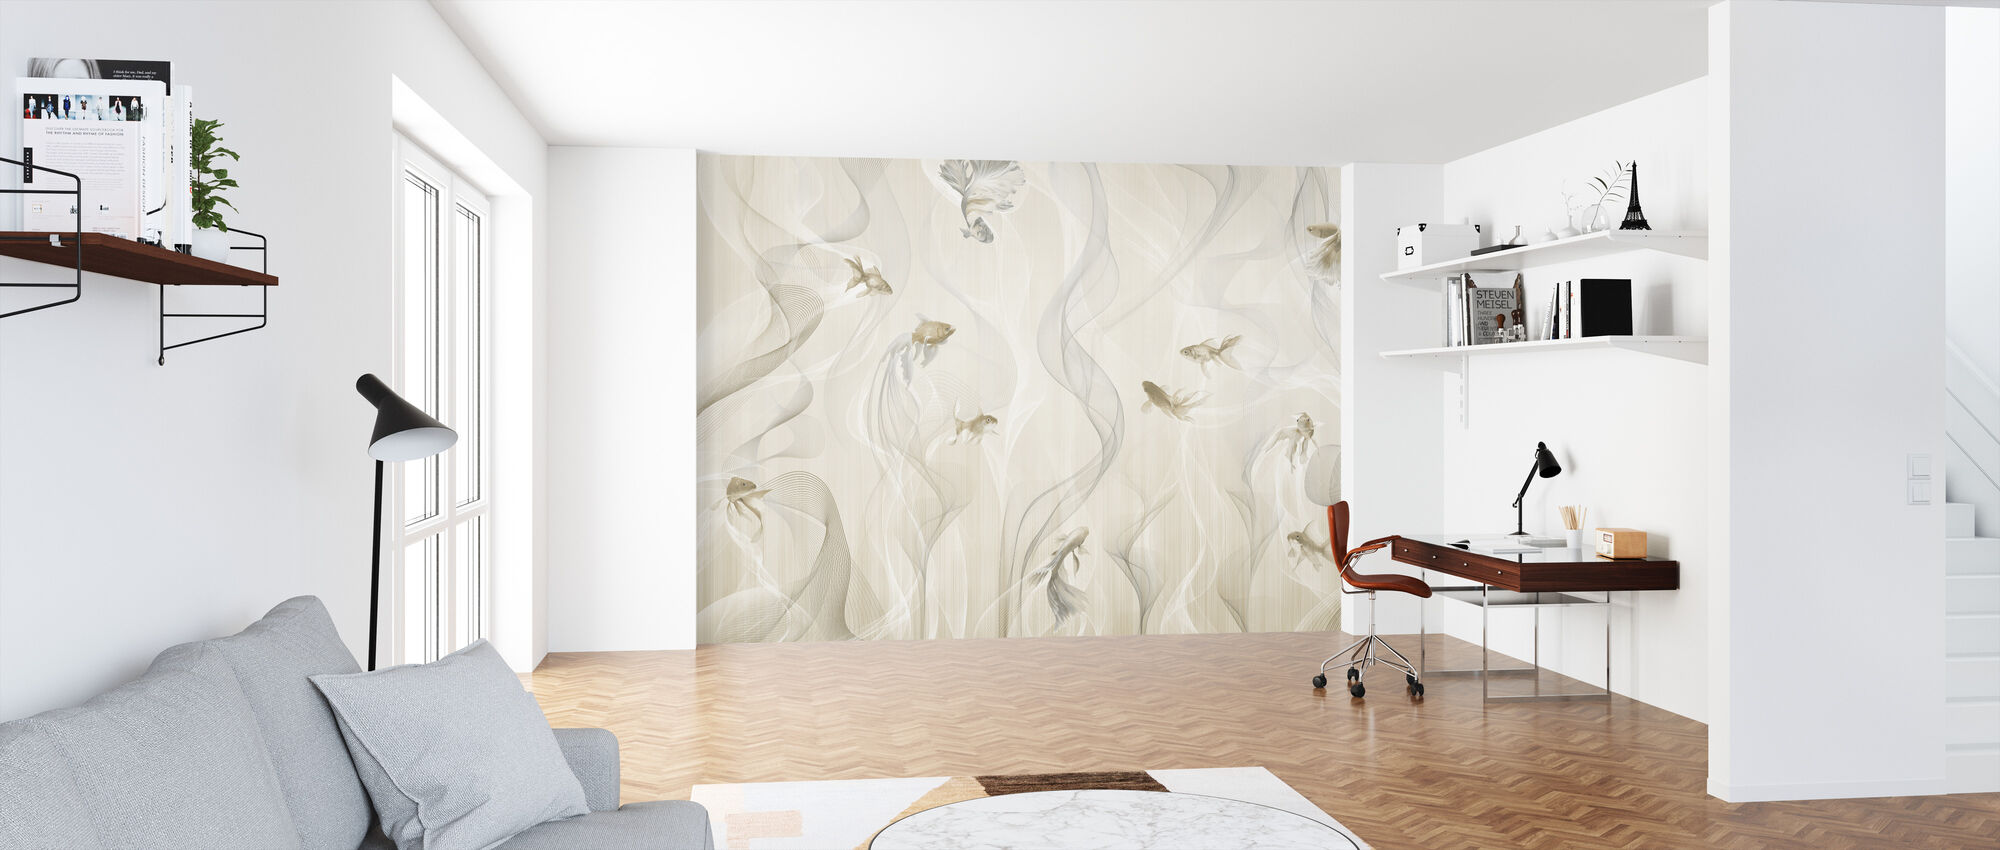 Fantailes - Wallpaper - Office